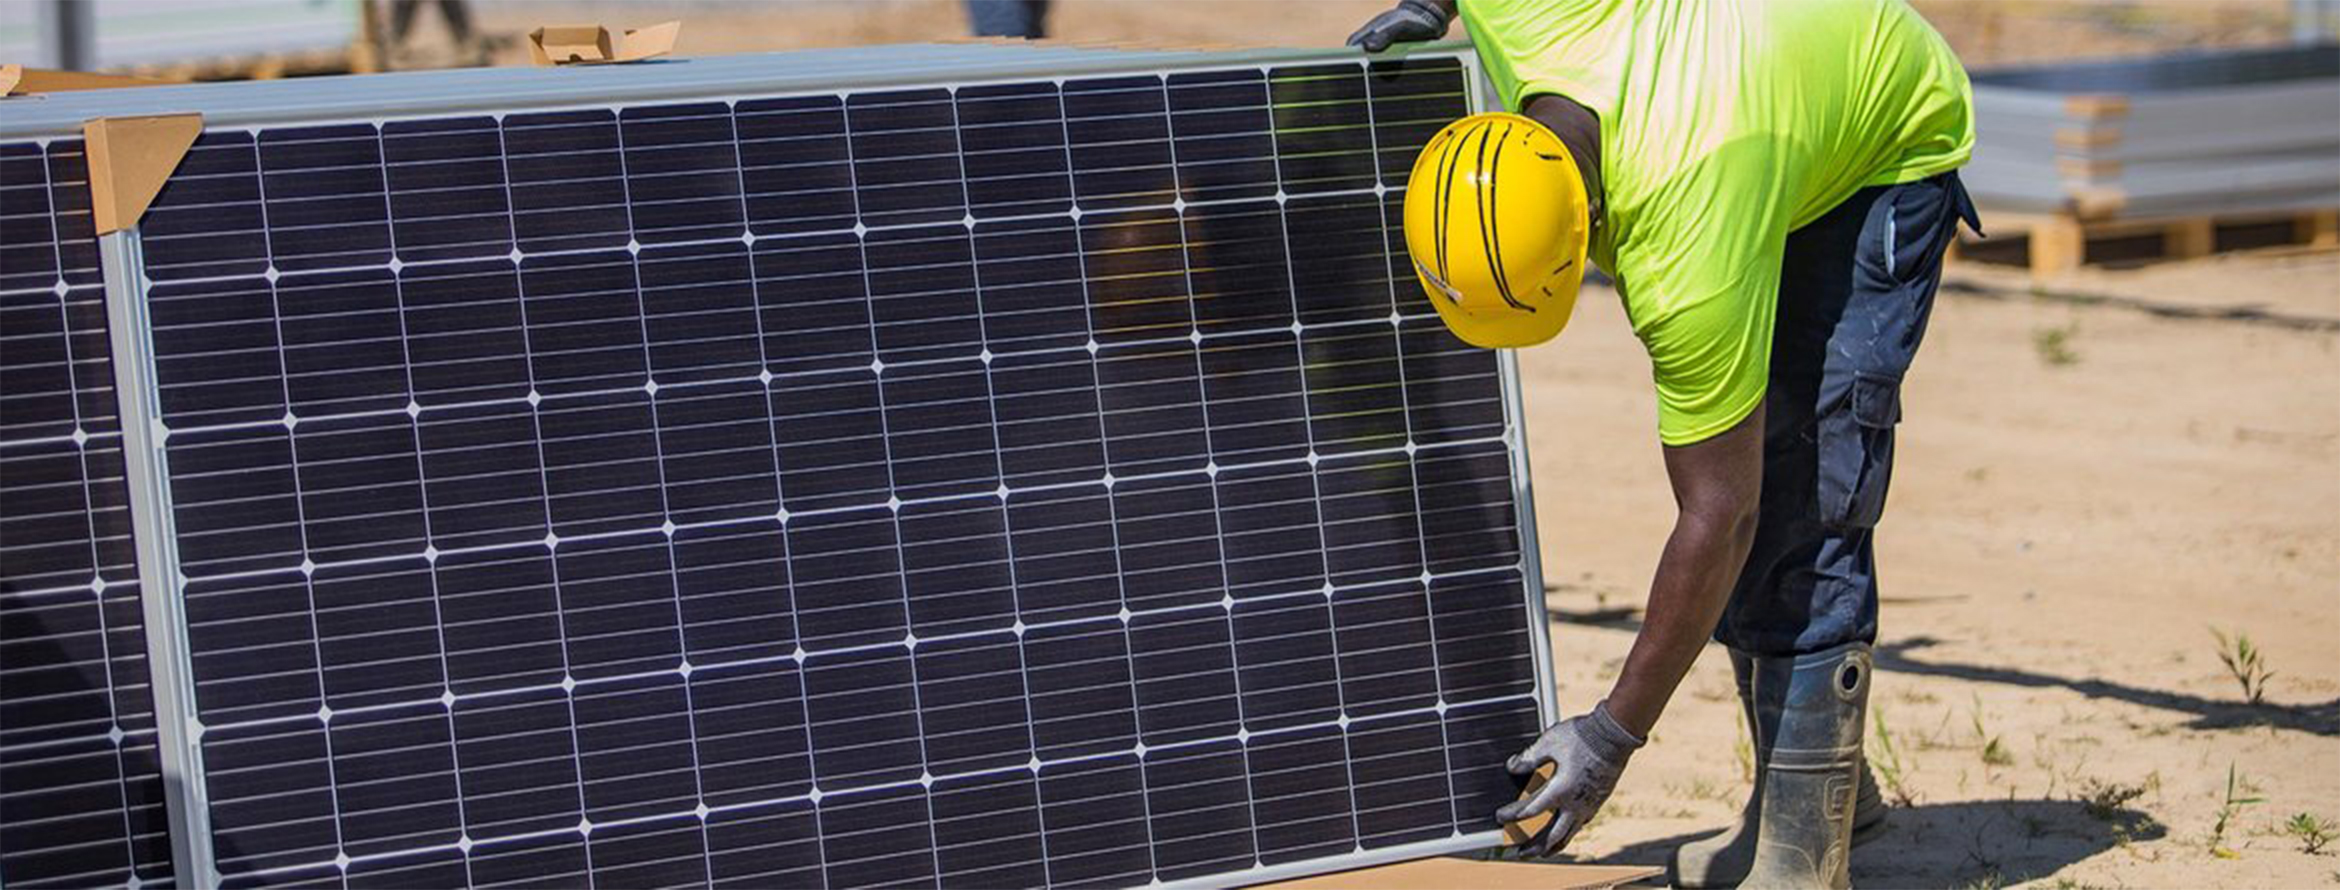 Construction worker in hard hat picking up solar panel on a site